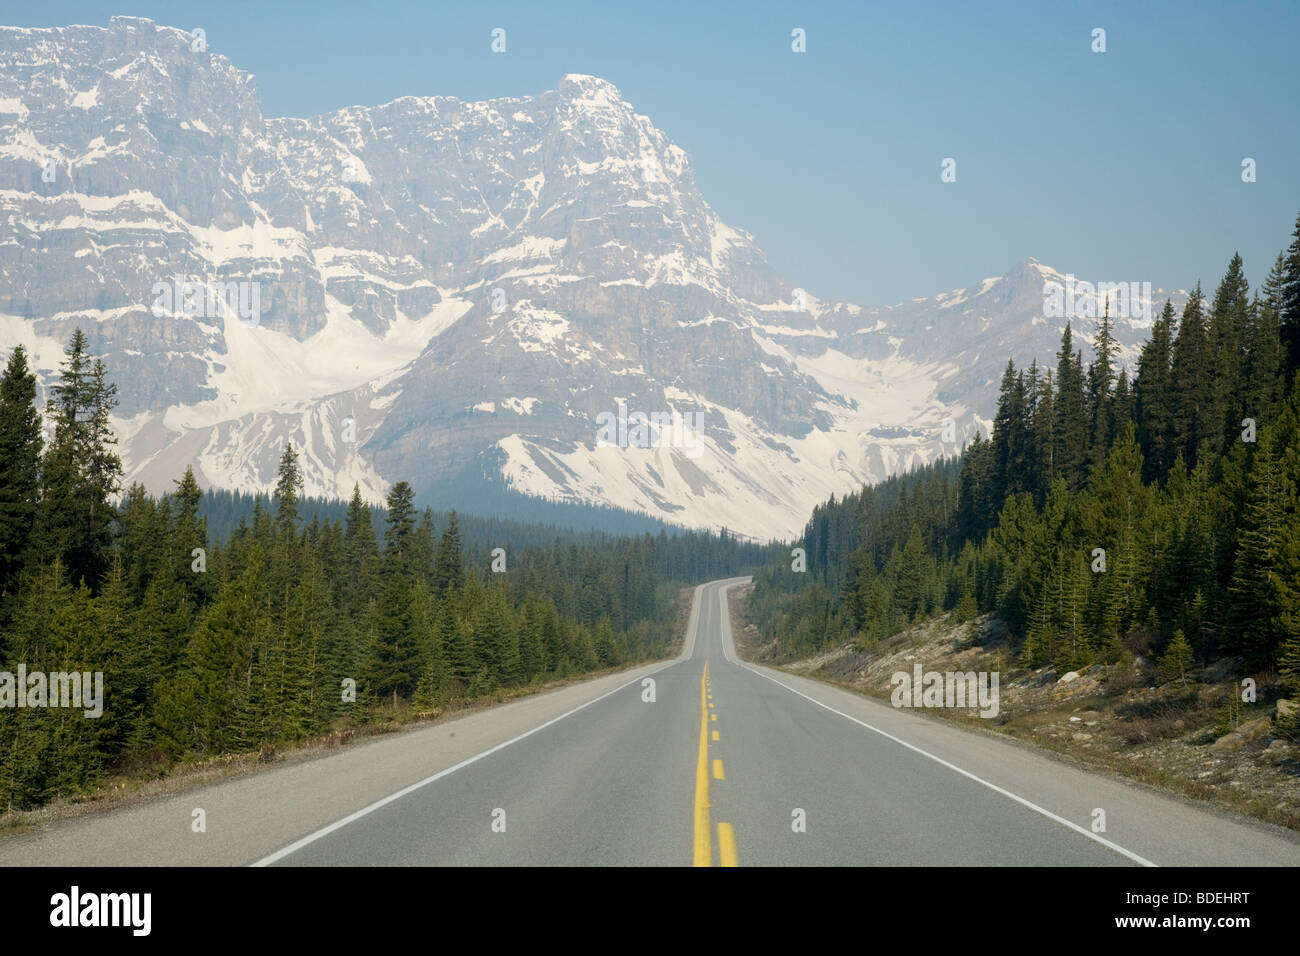 Icefields Parkway Banff National Park Alberta, Canada LA004226 Stock Photo